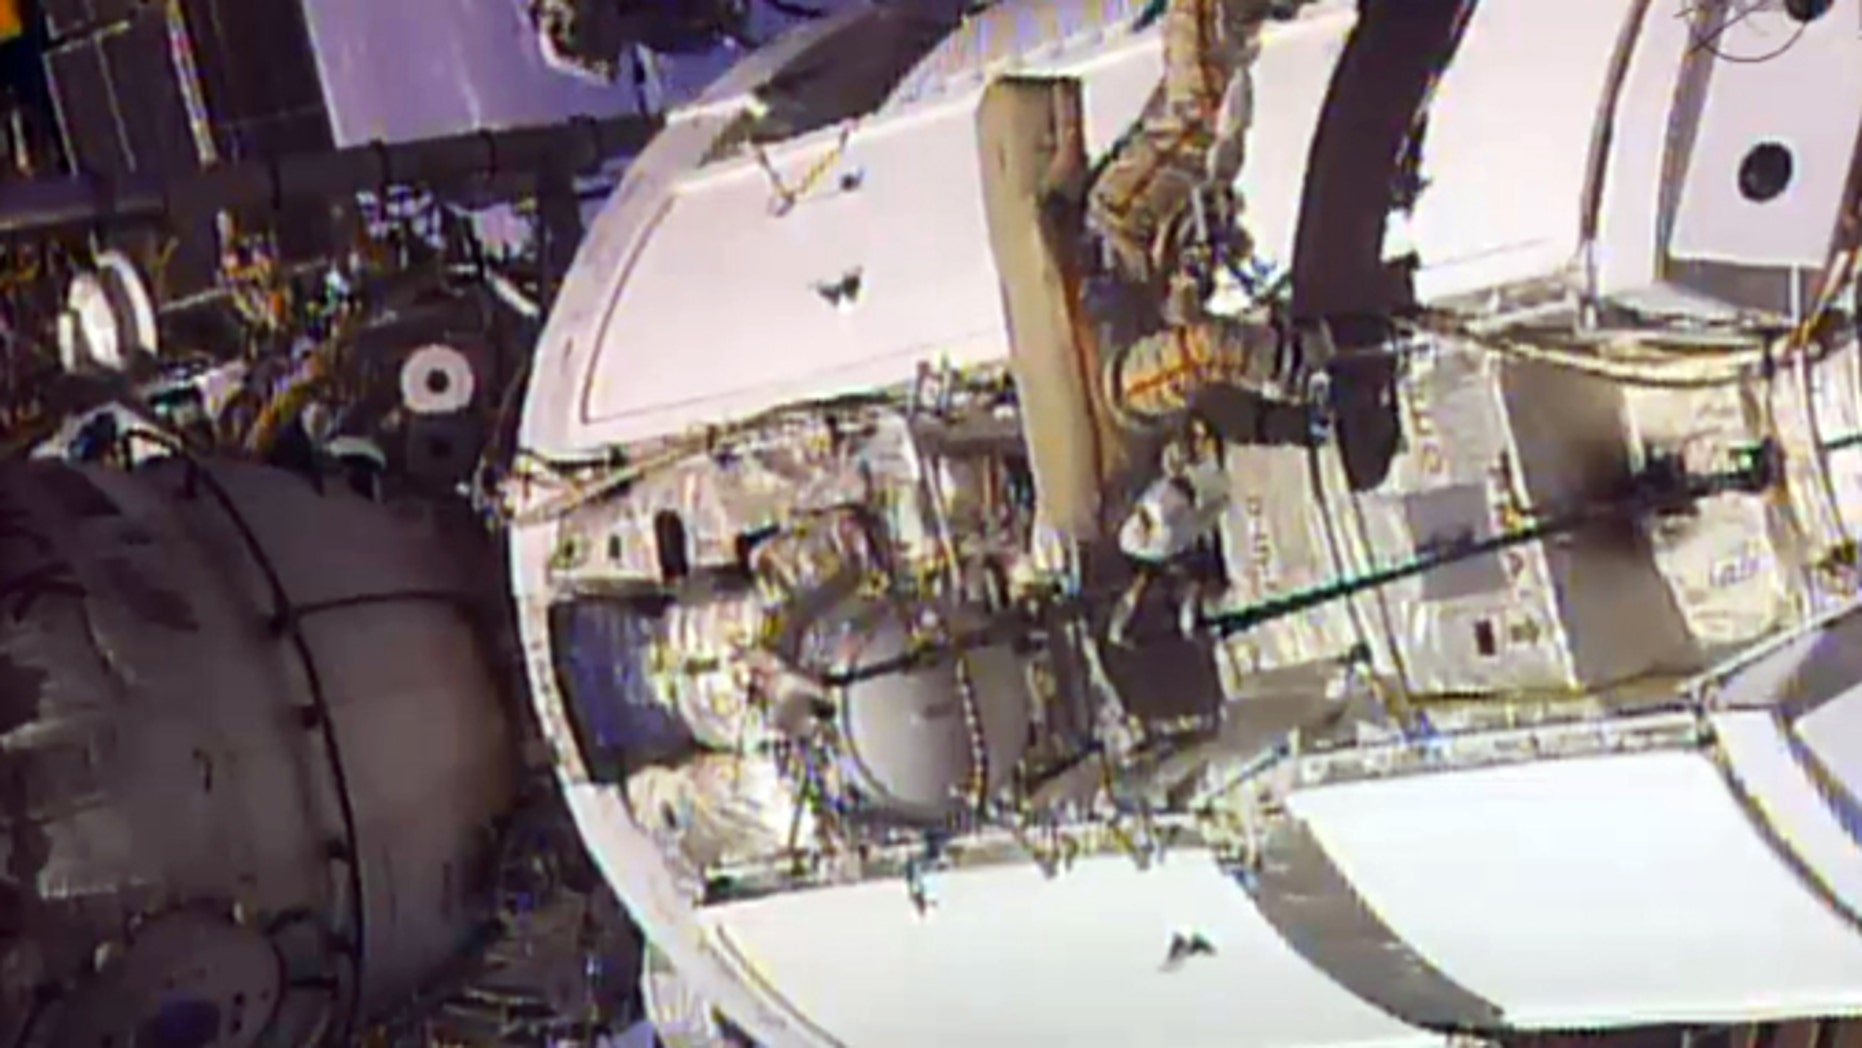 June 24, 2013: In this frame grab from video provided by NASA, two Russian flight engineers perform maintenance on the International Space Station.